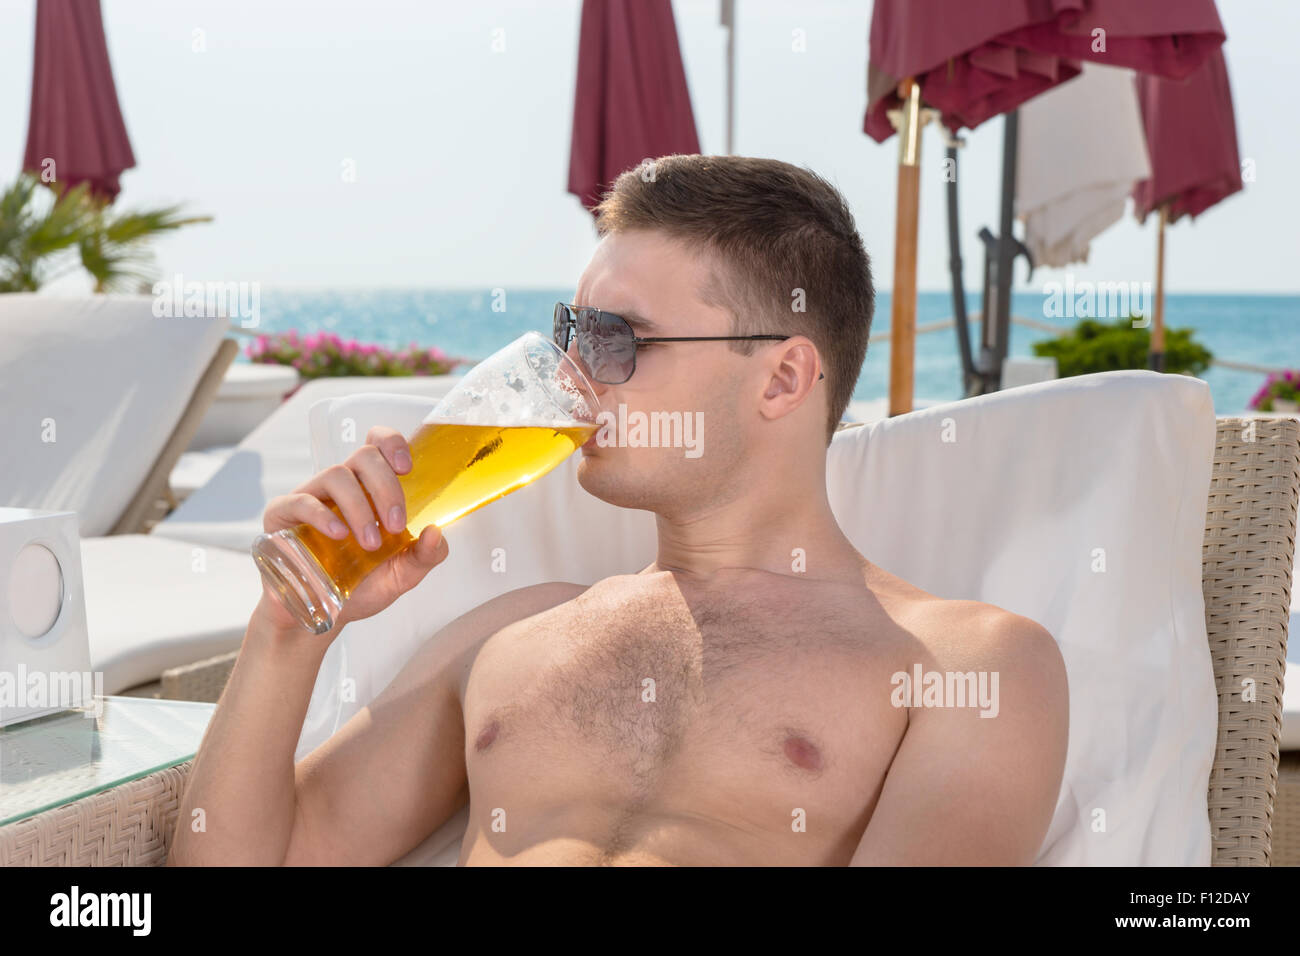 Stock Photo - Young man enjoying a cold beer as he relaxes on a recliner chair at a coastal resort with the ocean behind him  sc 1 st  Alamy & Young man enjoying a cold beer as he relaxes on a recliner chair ... islam-shia.org